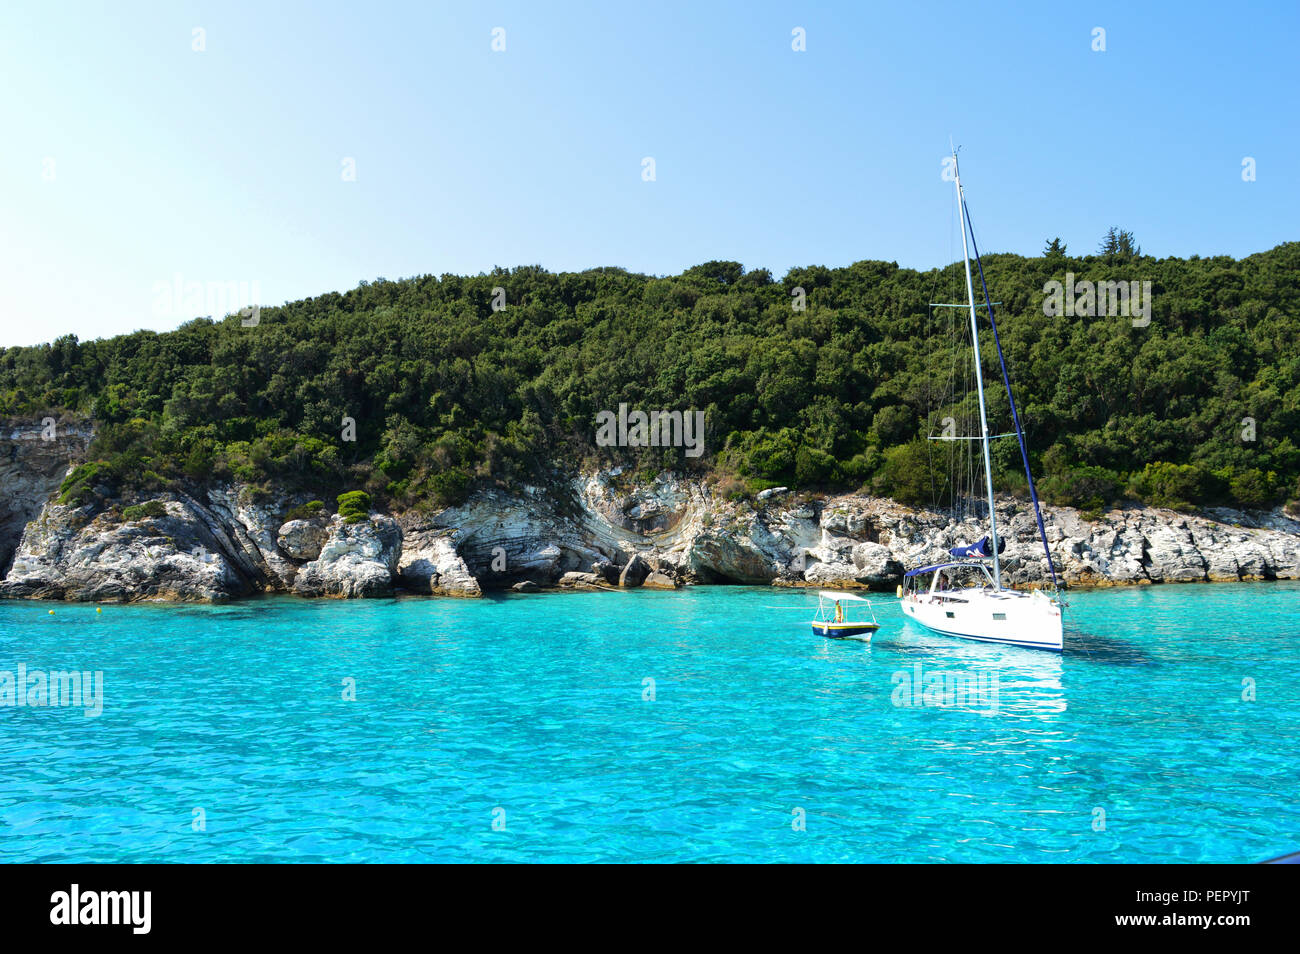 Breathtaking blue sea at Antipaxos, Greece. Trees all around and two boats over the water. A totally summer shot ! - Stock Image